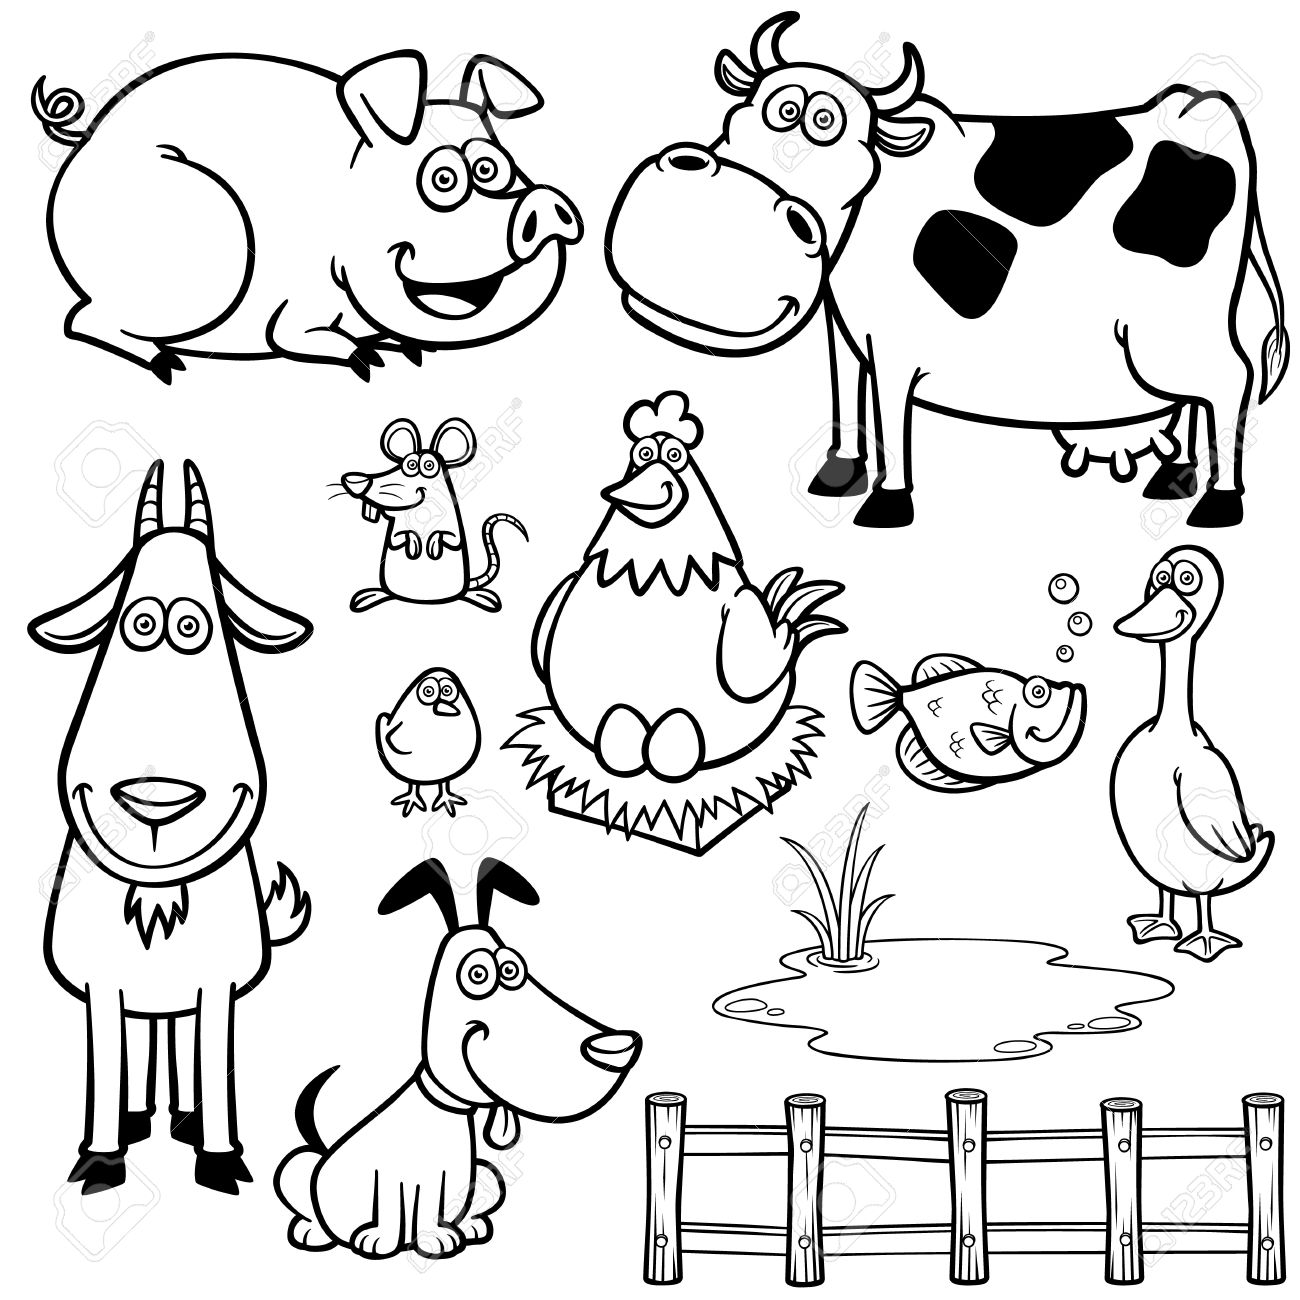 Vector Illustration Of Farm Animals Cartoon - Coloring Book Royalty ...